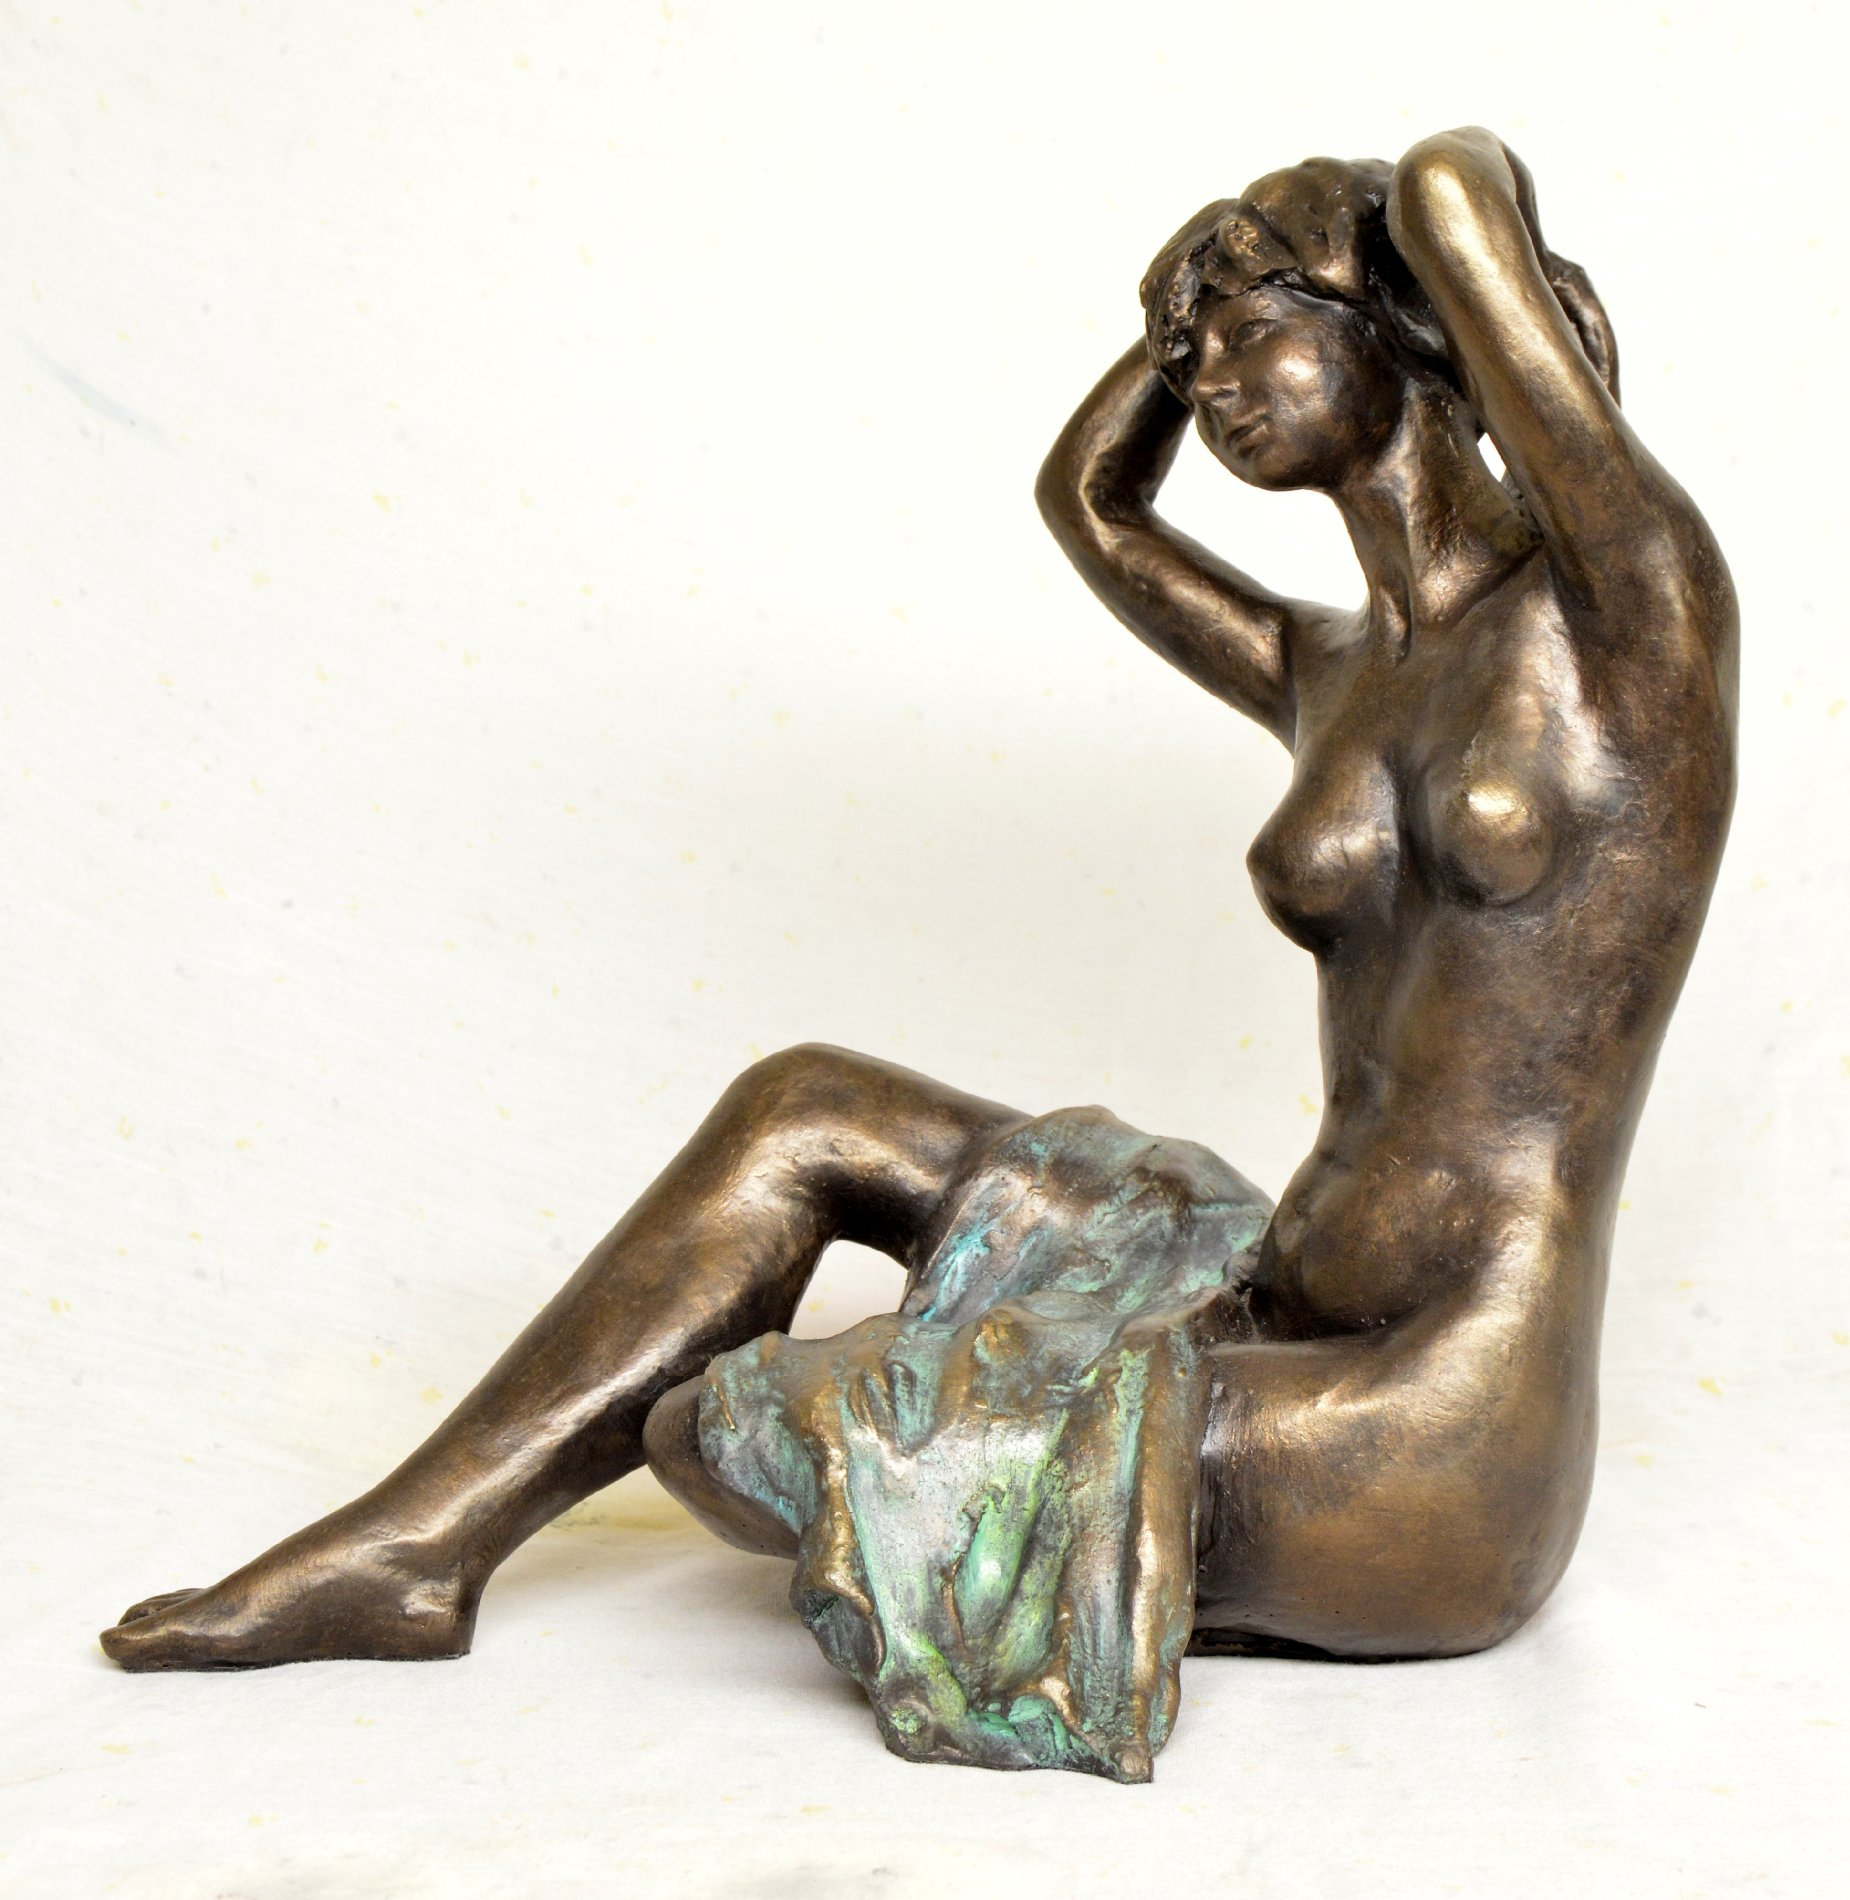 Nude woman cold cast bronze sculpture